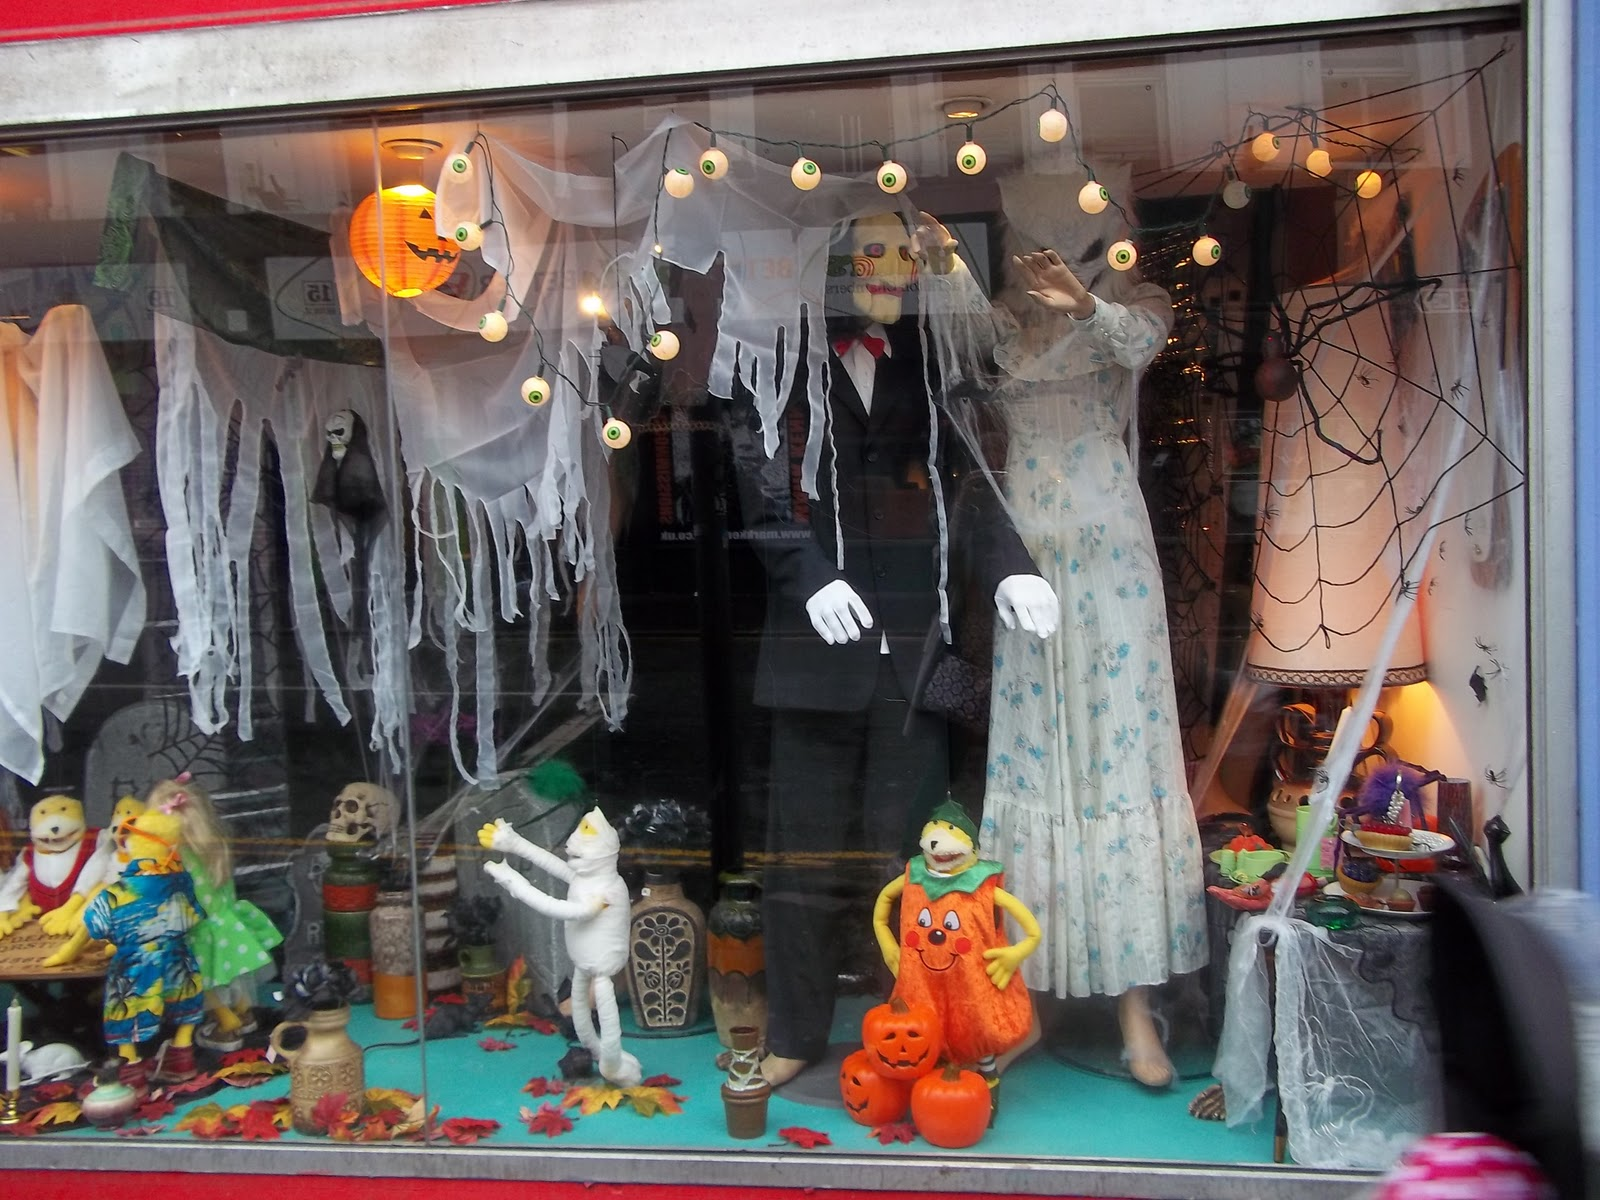 A classic Halloween window display with white sails and zombies.